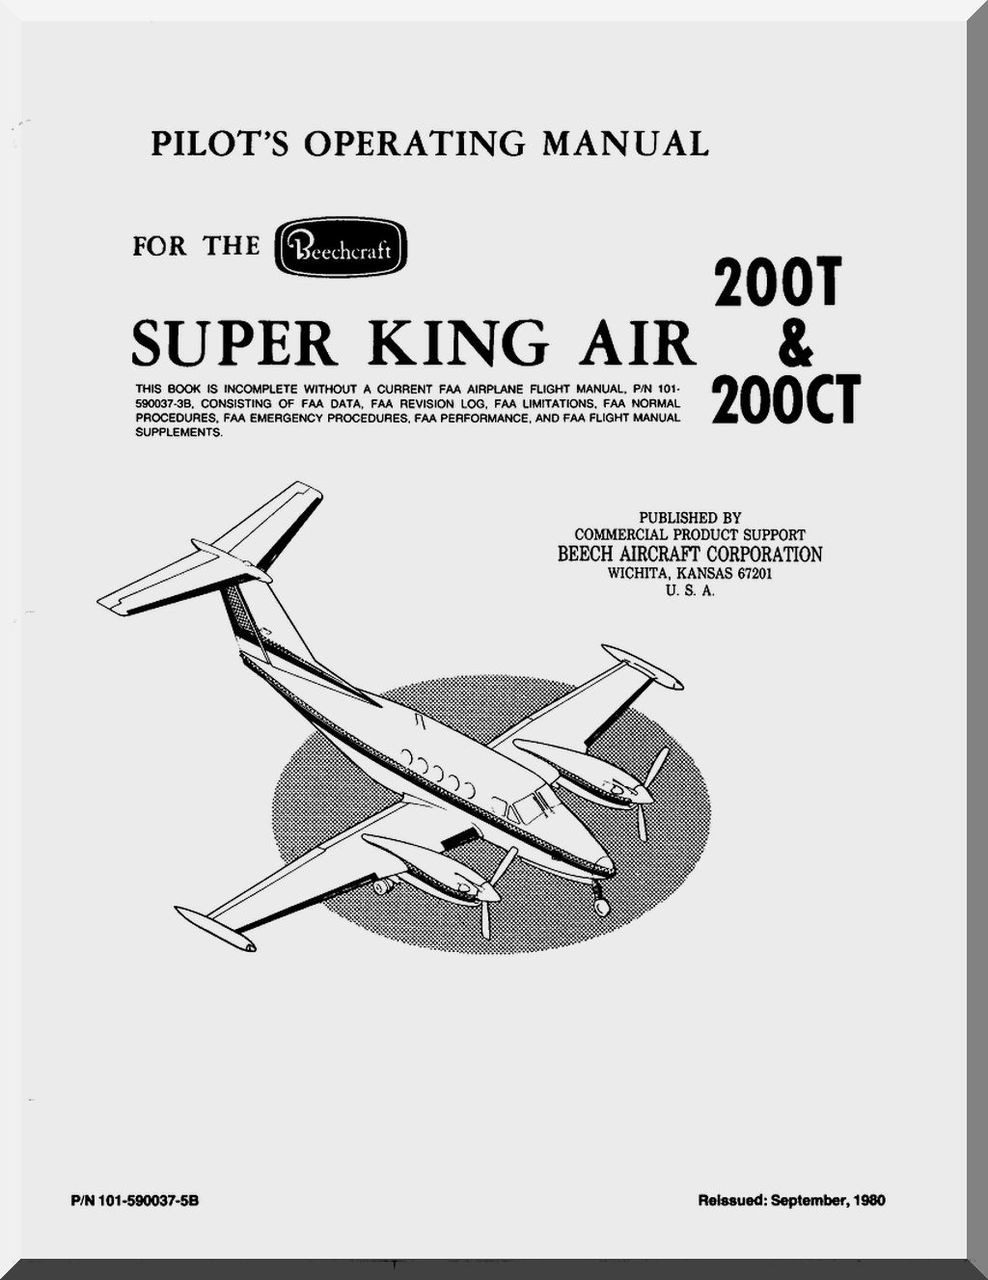 Beechcraft Model Super King Air 200 T & CT Aircraft Operating Manual